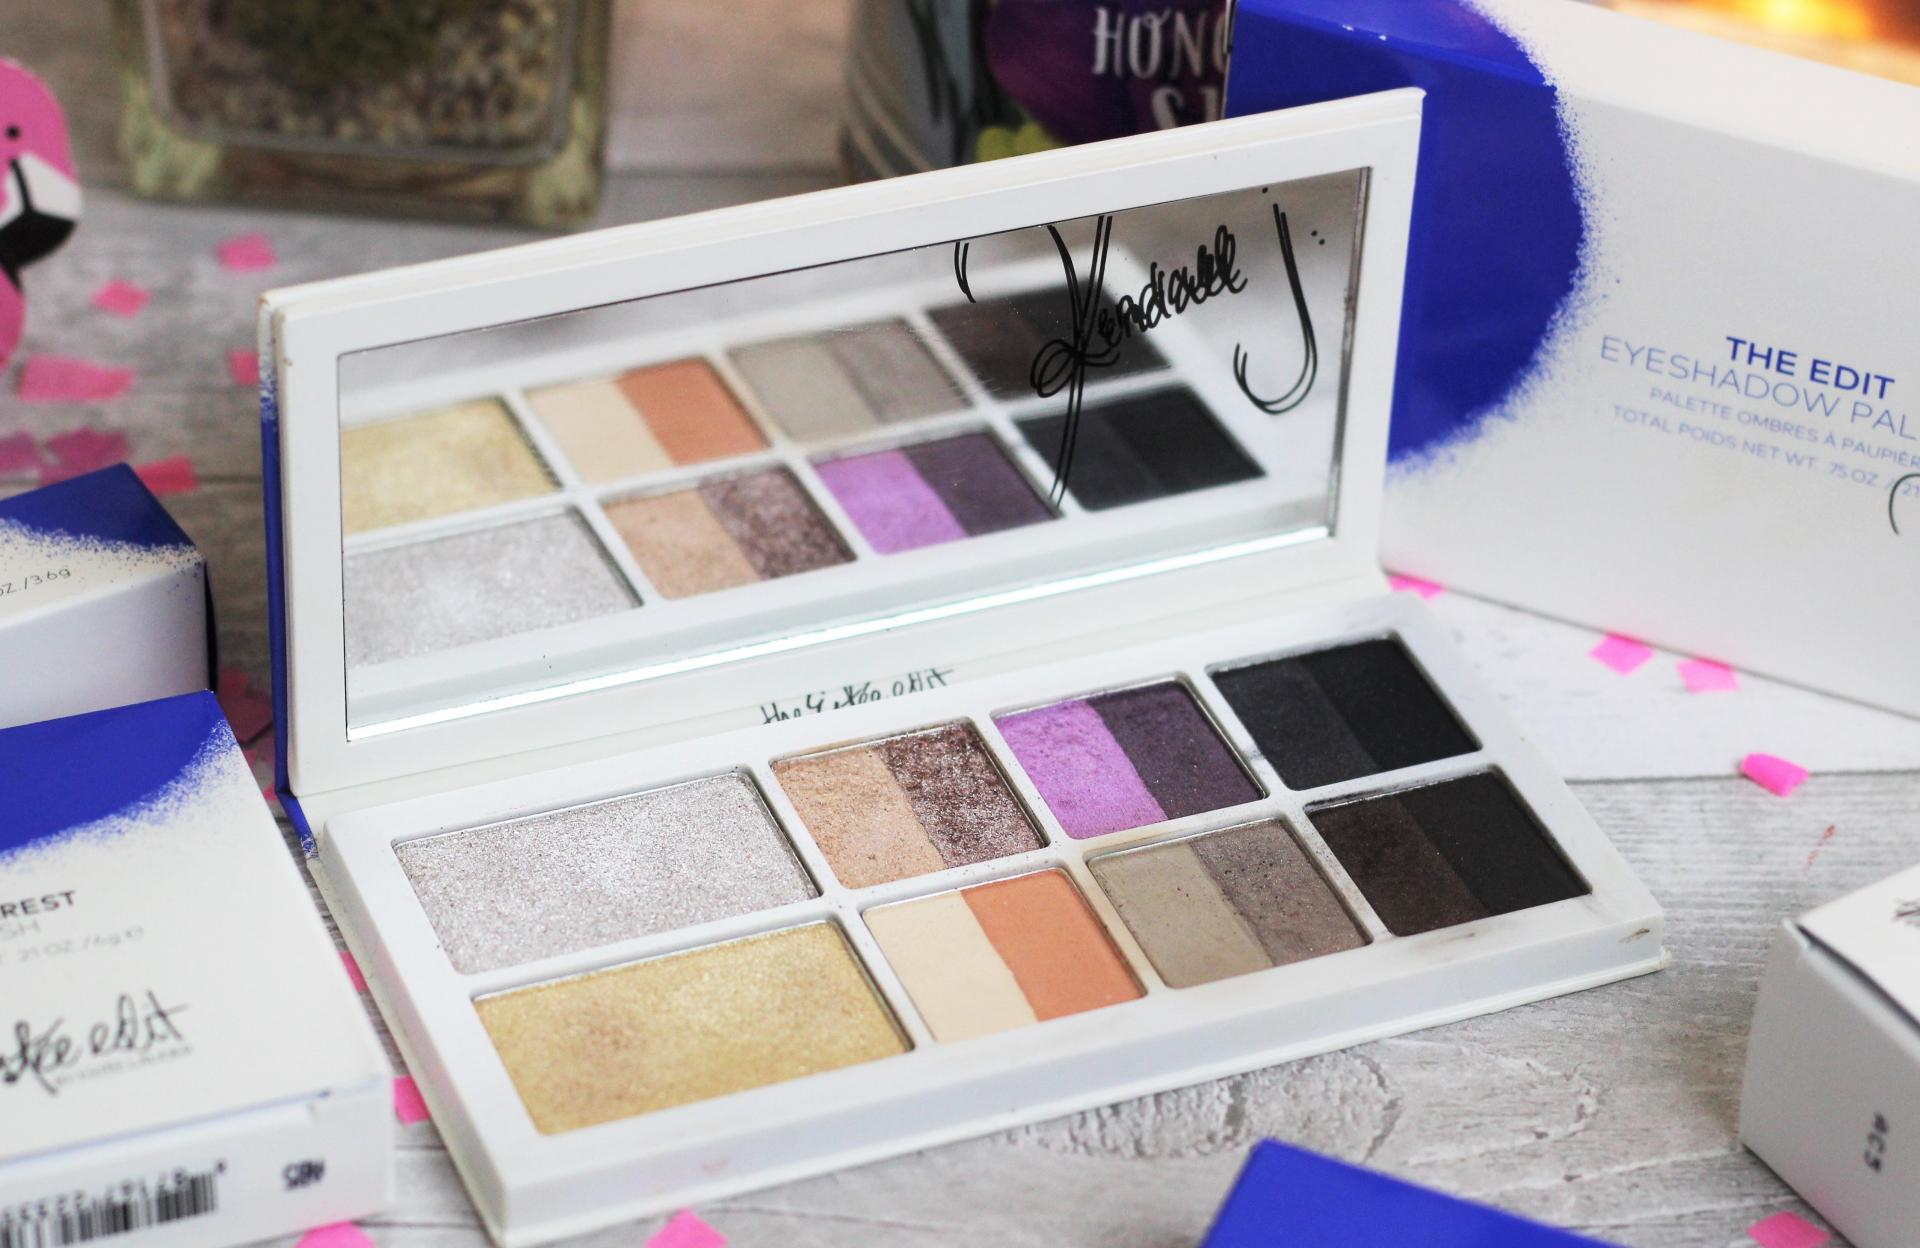 The Estée Edit - The Edit Eyeshadow Palette